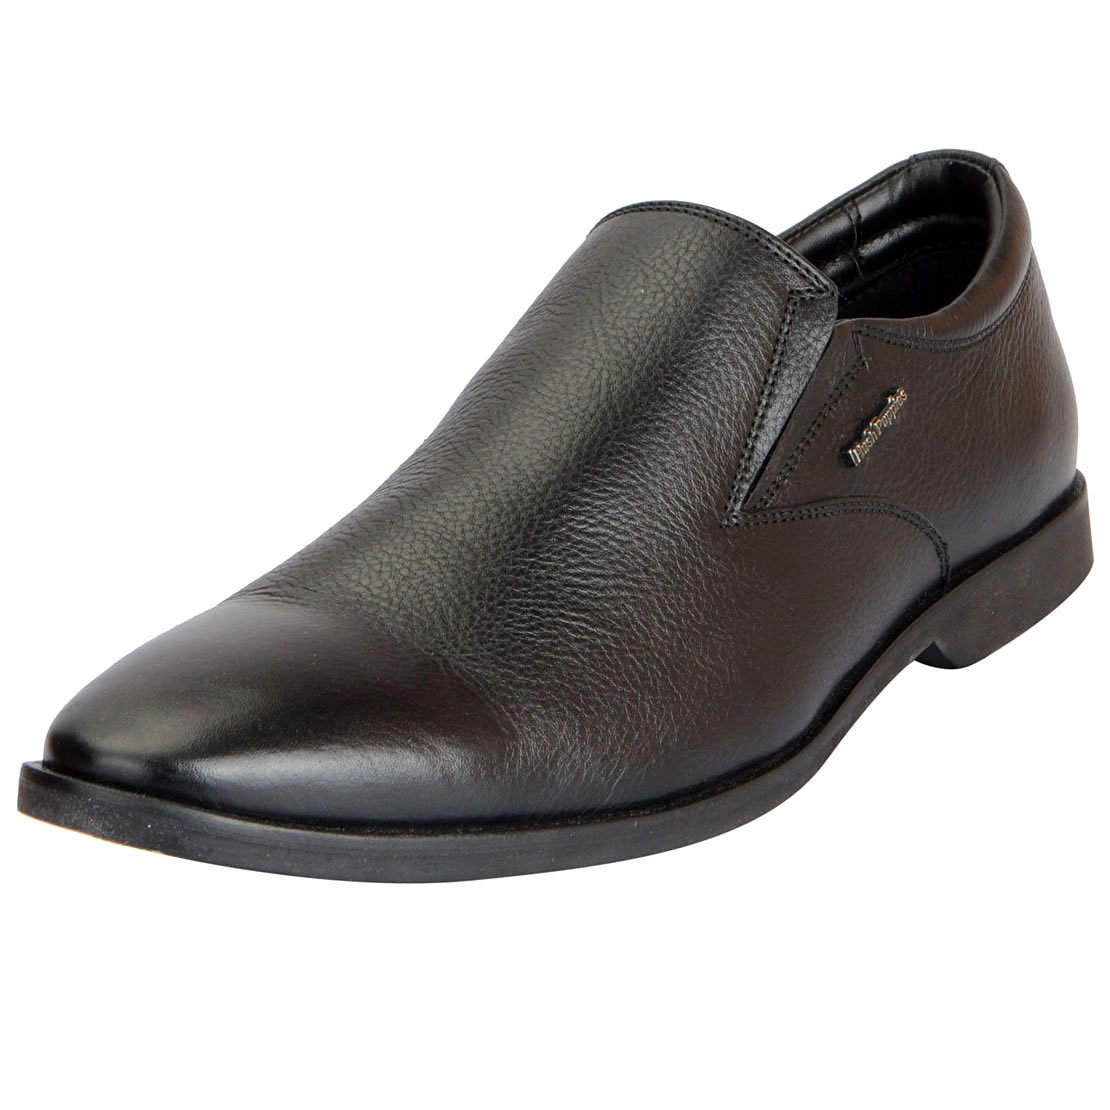 Premium Leather Formal Slip On Shoes